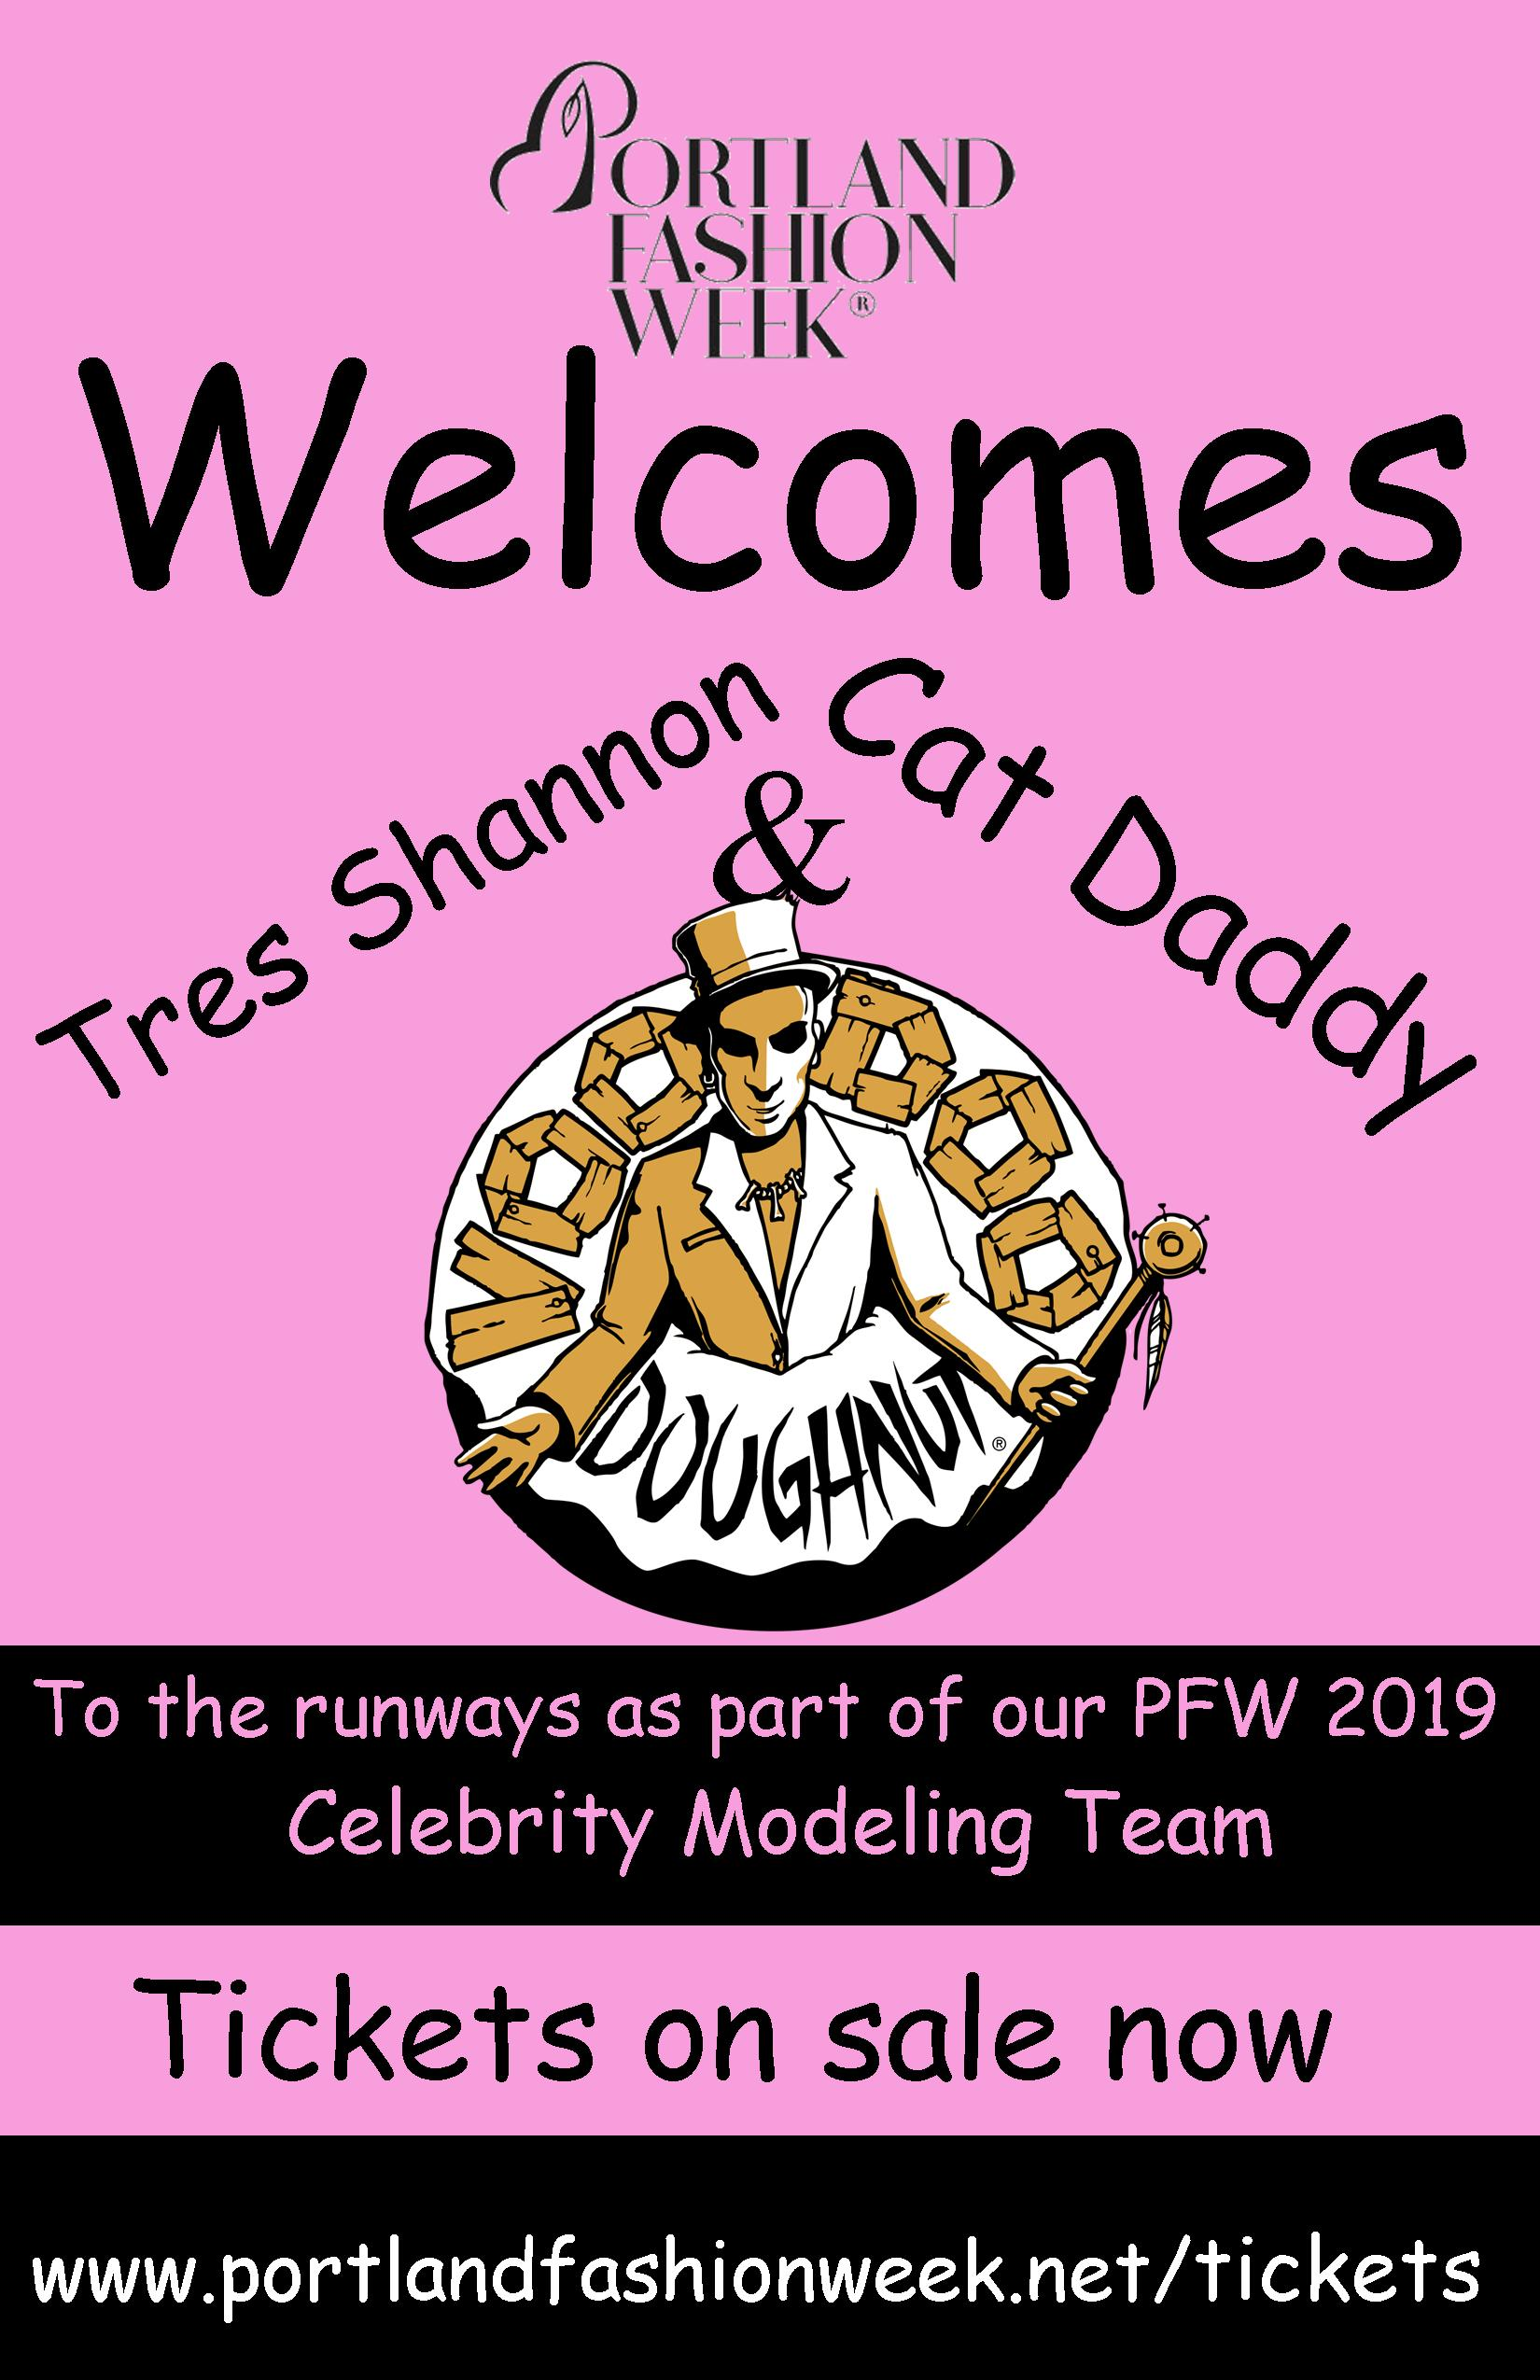 We welcome The Barons of Voodoo Doughnuts - to the Portland Fashion Week 2019 celebrity modeling team! Keep watching for more updates and the coolest local celebrities!